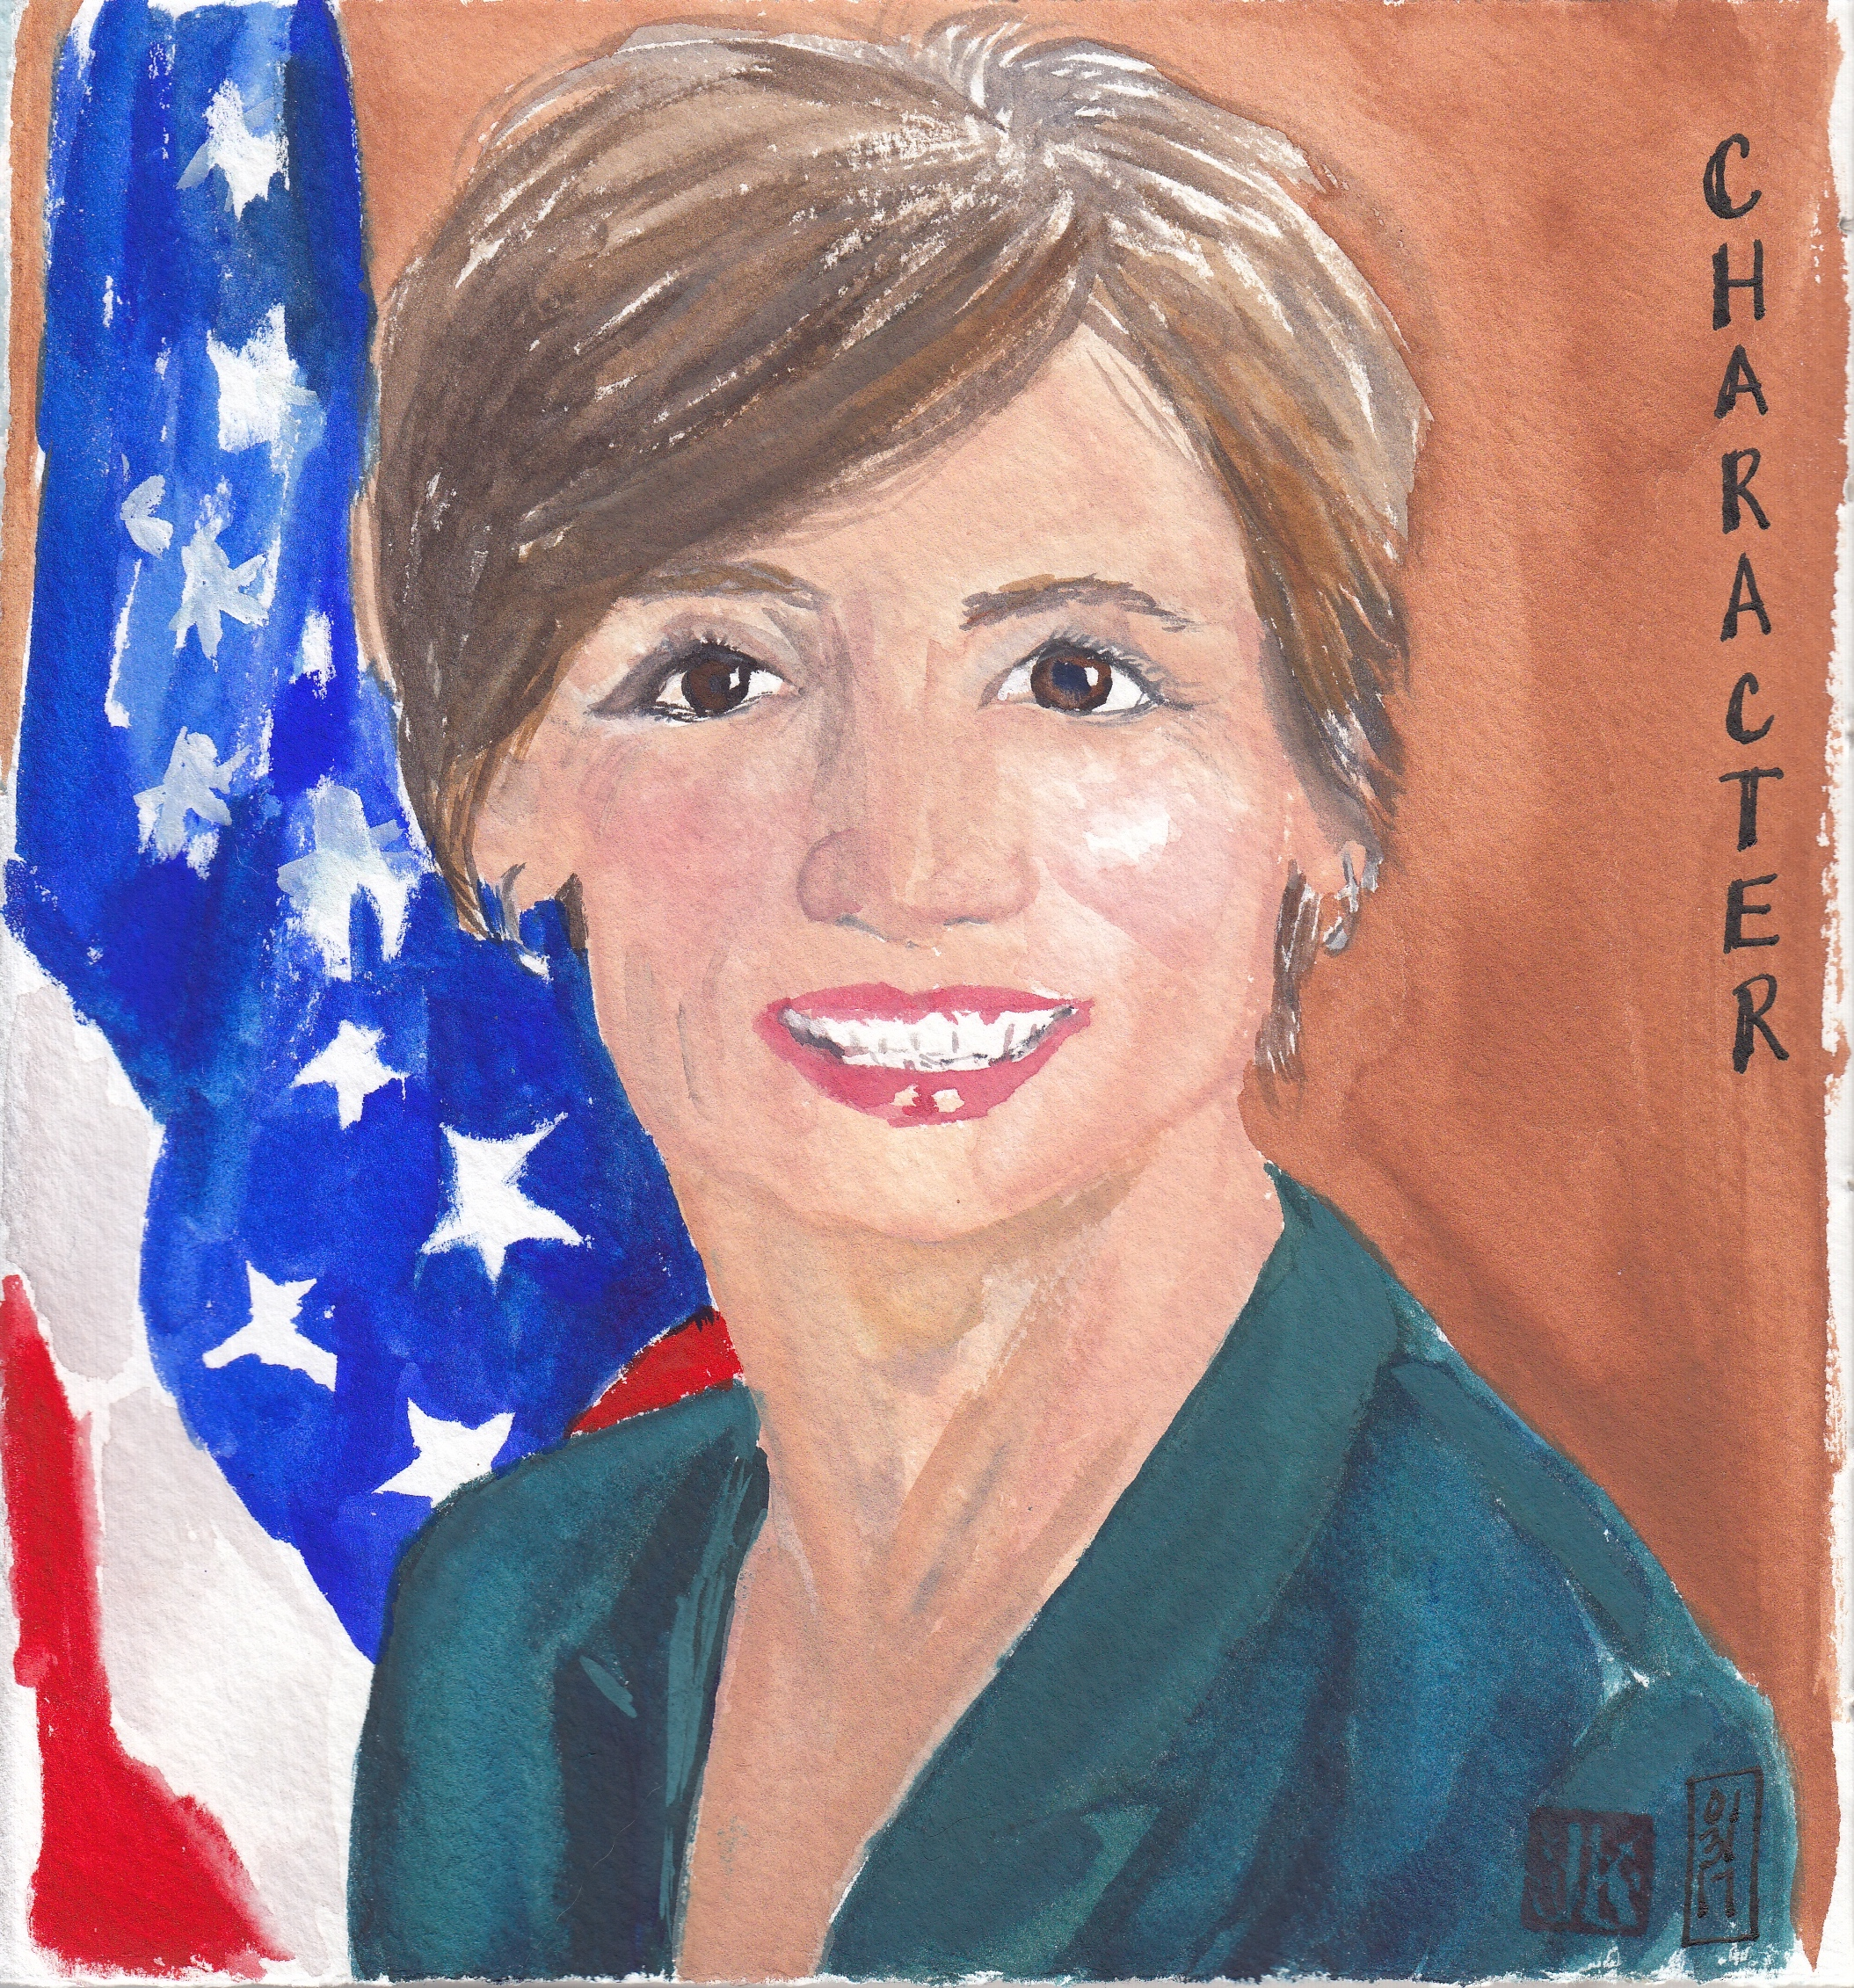 My first gouache portrait - an American hero, Sally Yates